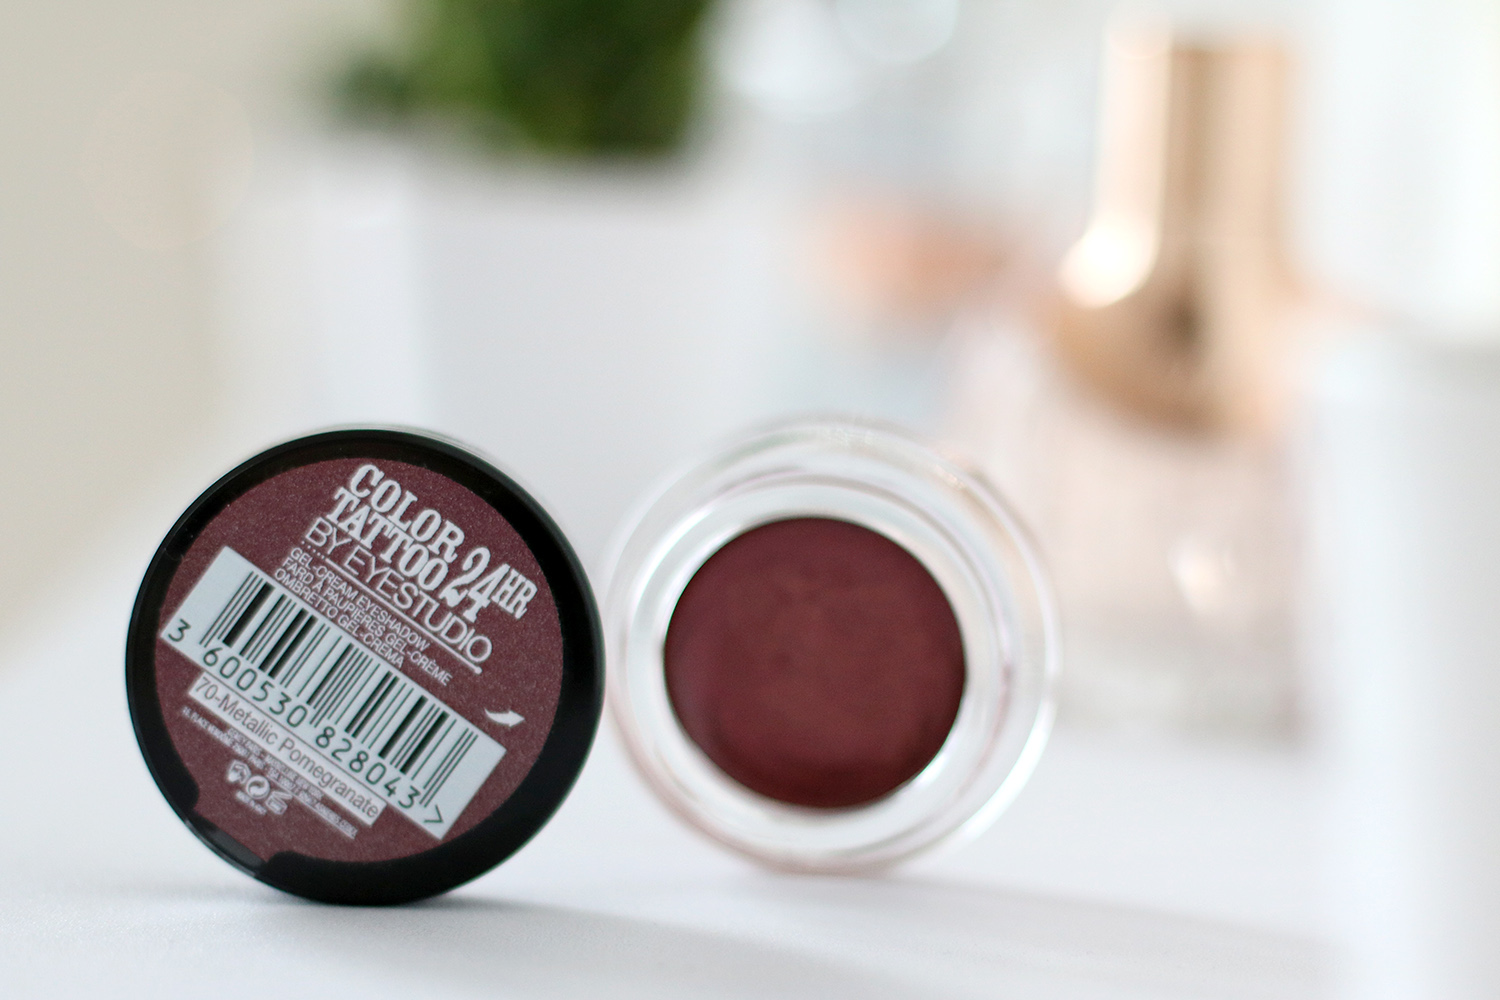 Color Tatoo 24 hr Lidschatten Maybelline, 70 metallic pomegranate, Beauty Haul Deutsch, Review, Beauty Blog, Berlin, Influencer, Youtuber, Advance Your Style, advanceyourstyle